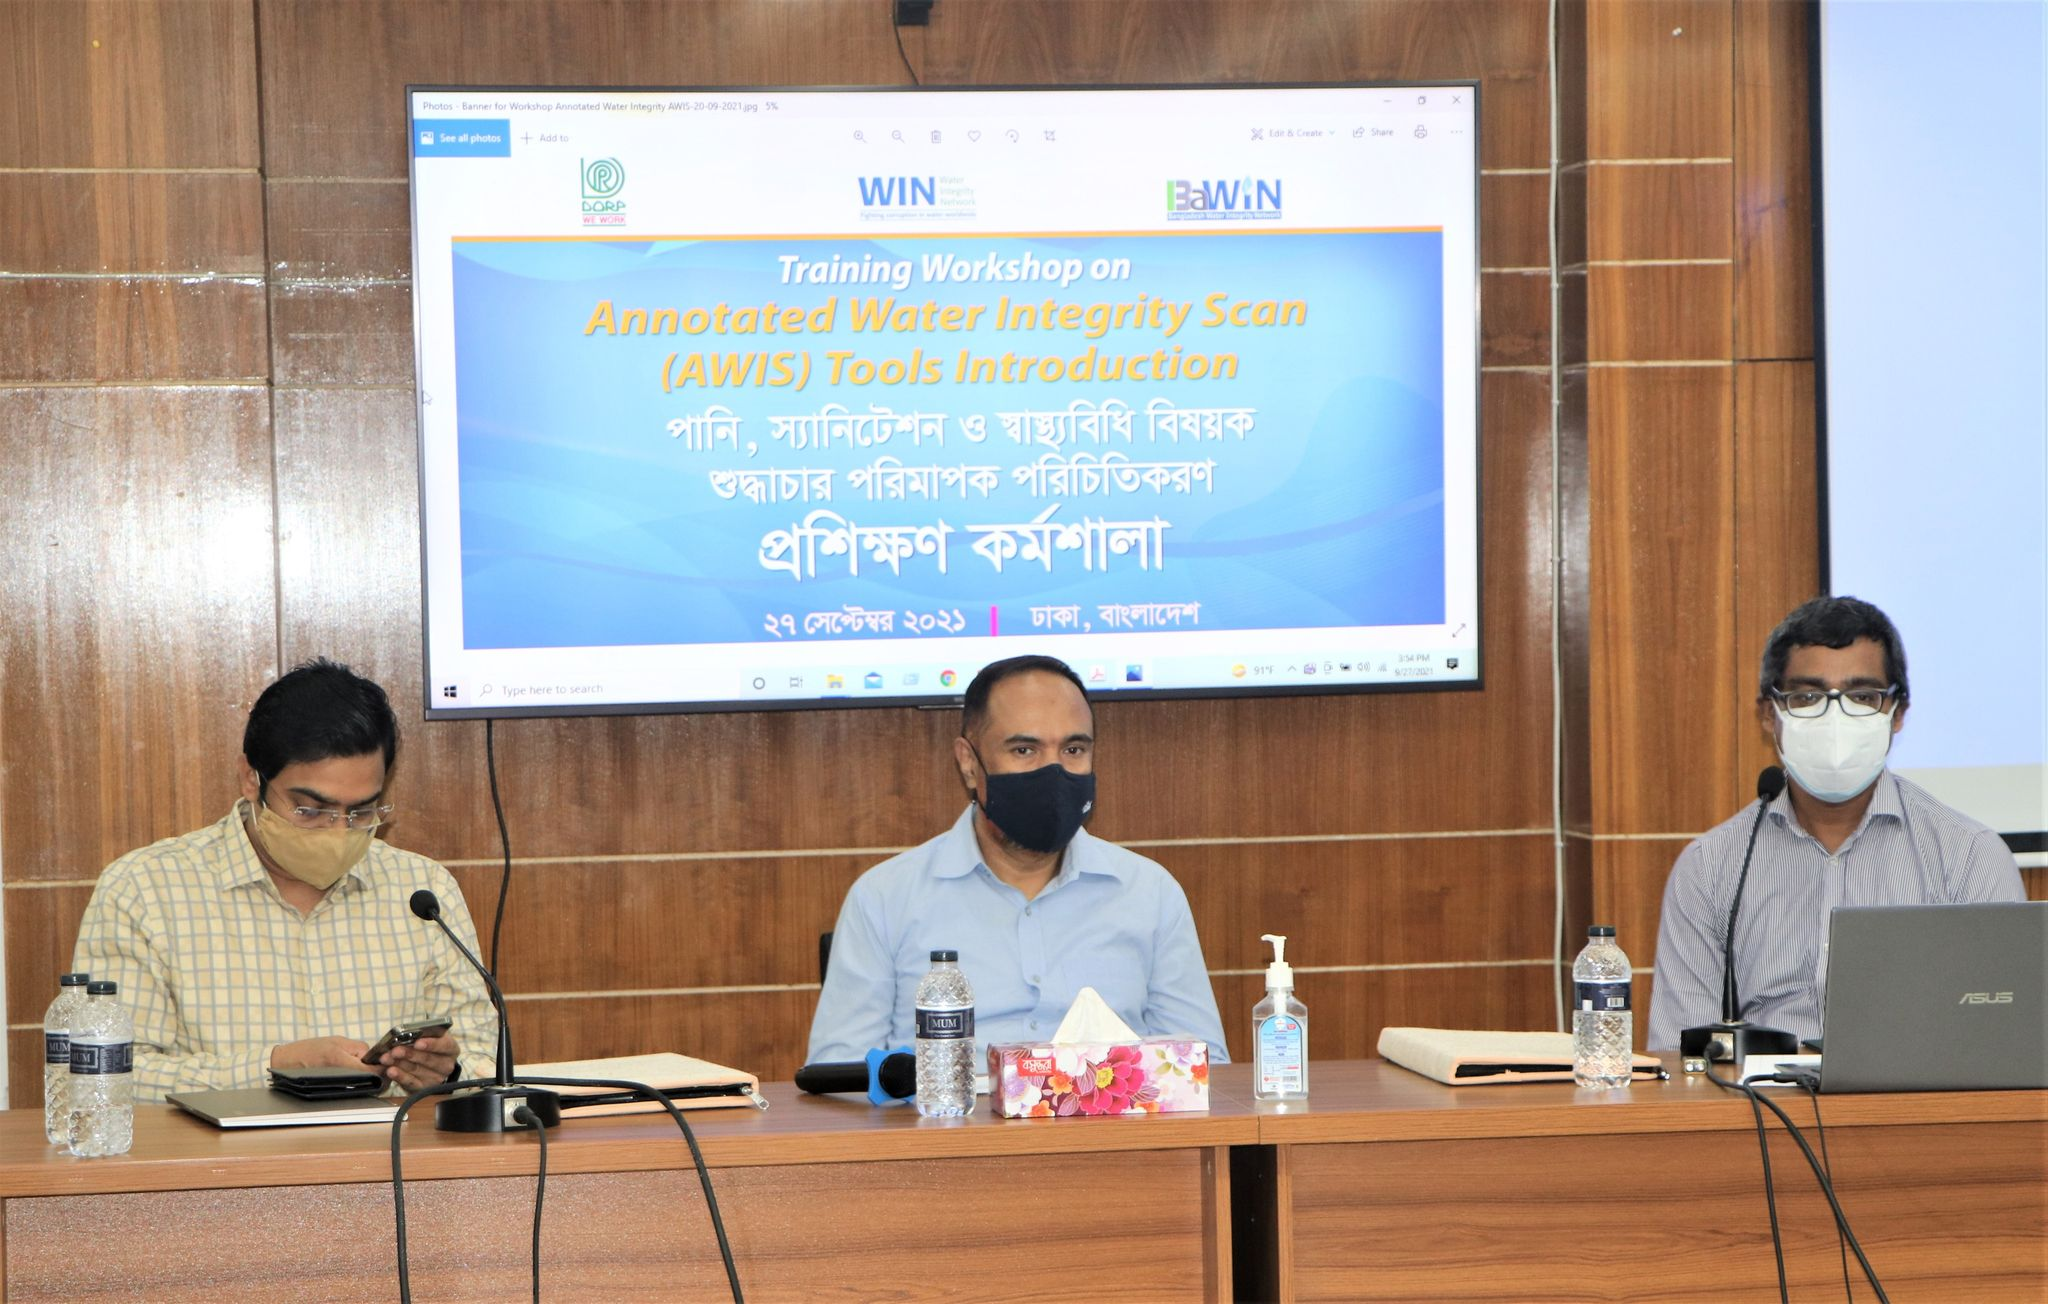 Water integrity assessment learned by CSOs